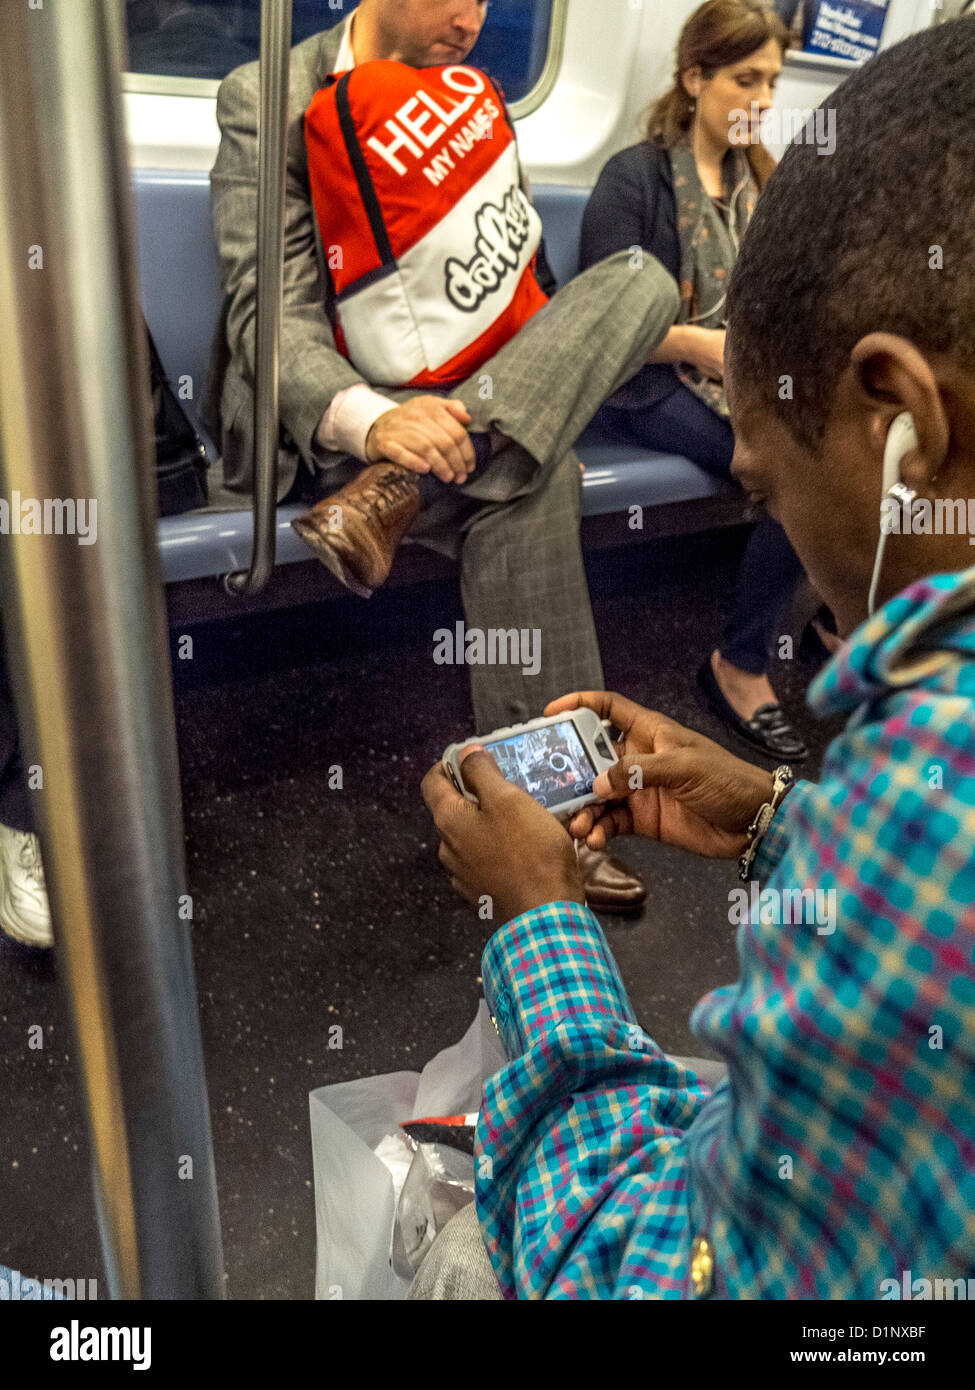 an african american man plays a video game on a smartphone while